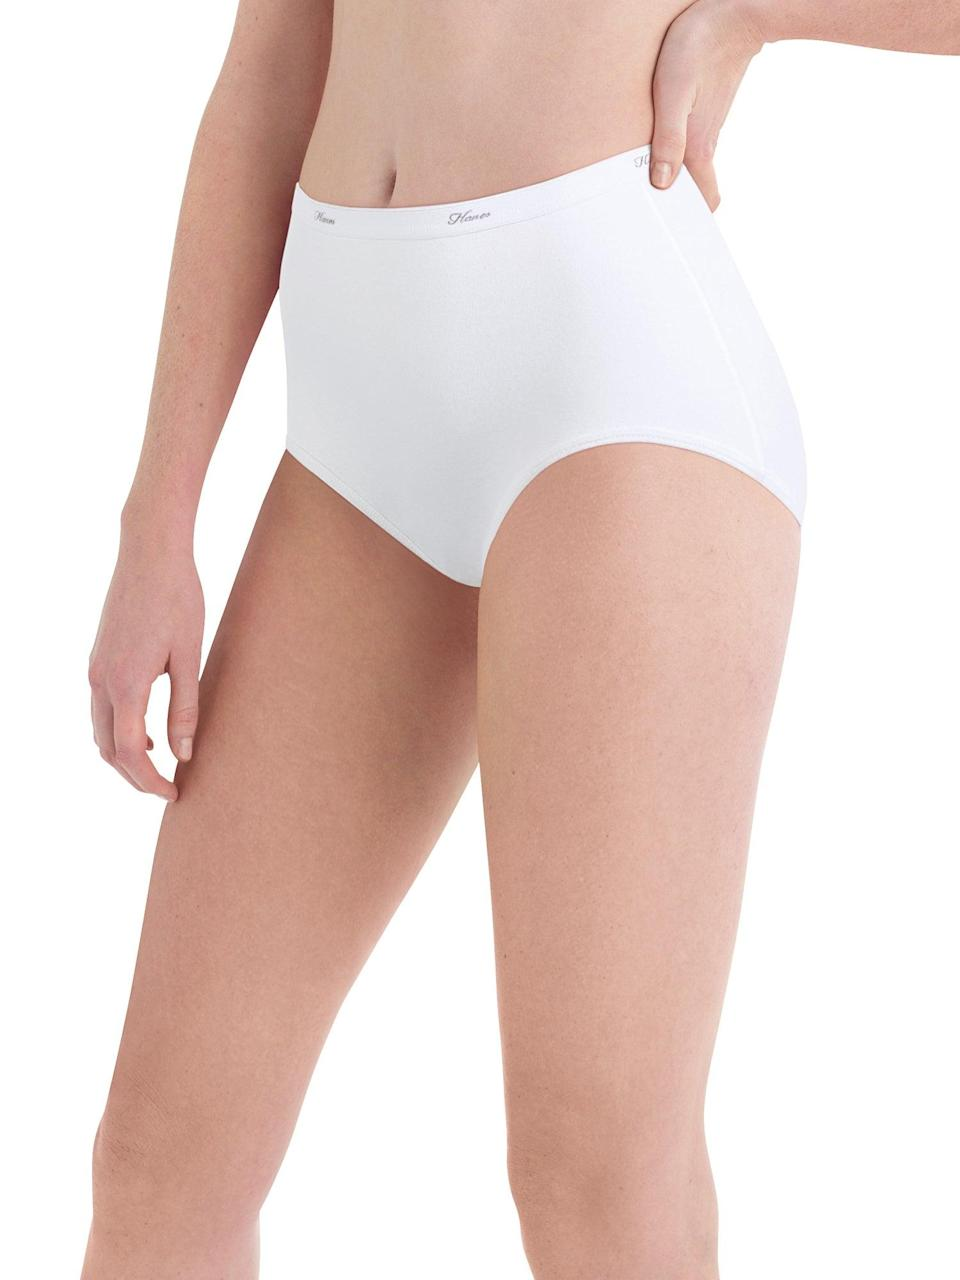 """<h3>Hanes Cool Comfort Cotton Brief</h3><br><strong>Best Economy Brief</strong><br><br>Leave it to Walmart to deliver on value. This quality cotton underwear pack's price couldn't get much lower if it tried. If you're on the hunt for an inexpensive, straightforward, full-coverage cotton option that you can count on, look no further. <br><br><strong>The Hype:</strong> 4.1 out of 5 stars; 4,431 reviews on <a href=""""https://www.walmart.com/ip/Hanes-Women-s-Cool-Comfort-Cotton-Brief-Panties-6-Pack/10855206"""" rel=""""nofollow noopener"""" target=""""_blank"""" data-ylk=""""slk:Walmart.com"""" class=""""link rapid-noclick-resp"""">Walmart.com</a><br><br><strong>What They Are Saying:</strong> """"Great fit and very comfy! Bought one package for me and one for my daughter. I've been buying these for many years now and love them! Sizing is right on the money and they're really comfortable!""""<br><br><br><br><strong>Hanes</strong> 6-Pack Cool Comfort Cotton Brief Panties, $, available at <a href=""""https://go.skimresources.com/?id=30283X879131&url=https%3A%2F%2Fwww.walmart.com%2Fip%2FHanes-Women-s-Cool-Comfort-Cotton-Brief-Panties-6-Pack%2F10855204"""" rel=""""nofollow noopener"""" target=""""_blank"""" data-ylk=""""slk:Walmart"""" class=""""link rapid-noclick-resp"""">Walmart</a>"""